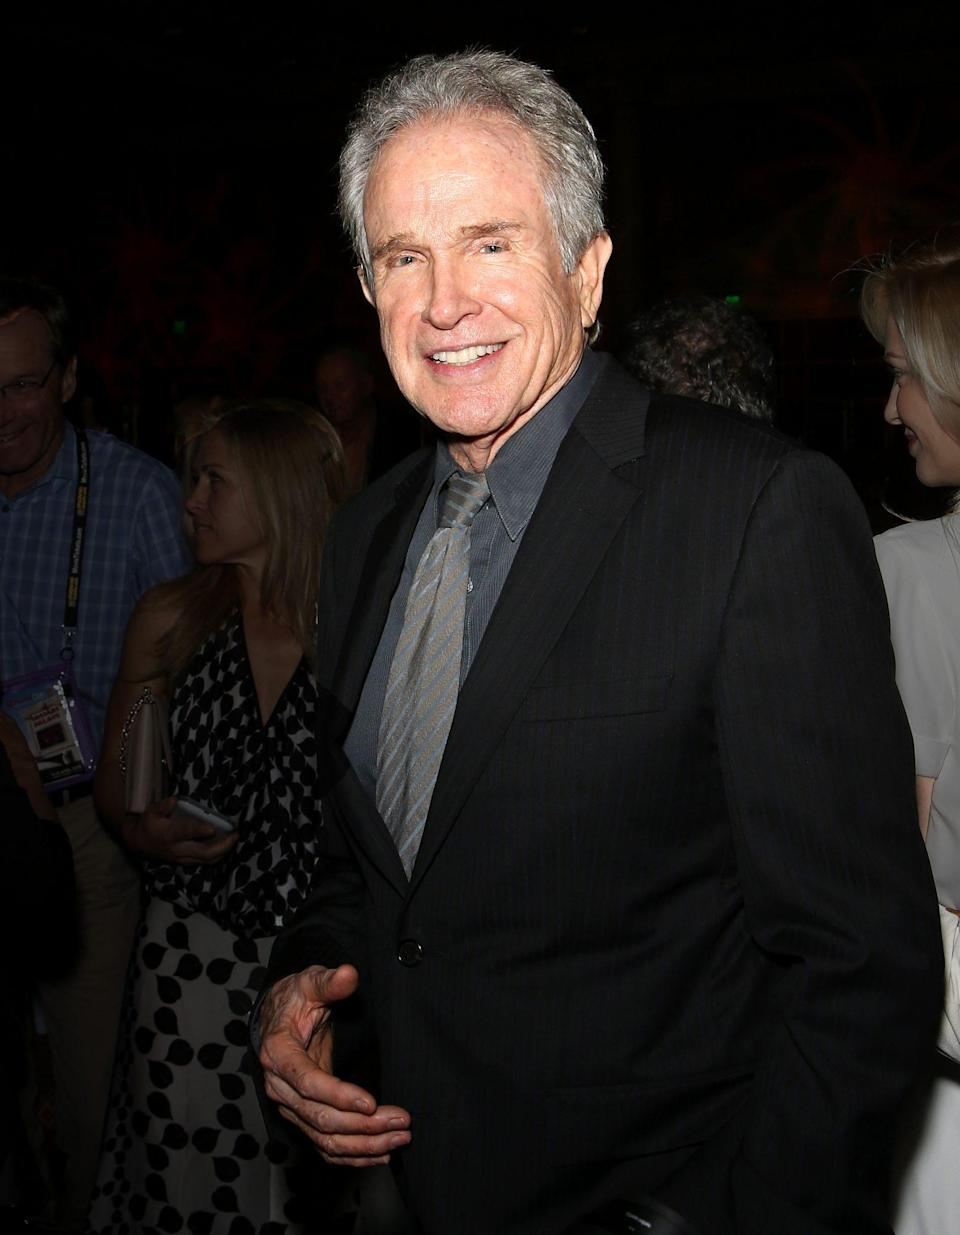 <p>The Golden Globe Awards didn't happen in 2008 due to the Writer's Guild of America strike. But one year prior, Warren Beatty won the Cecil B. DeMille Award in 2007. His first Globes win came in 1962 for most promising newcomer - male. </p>